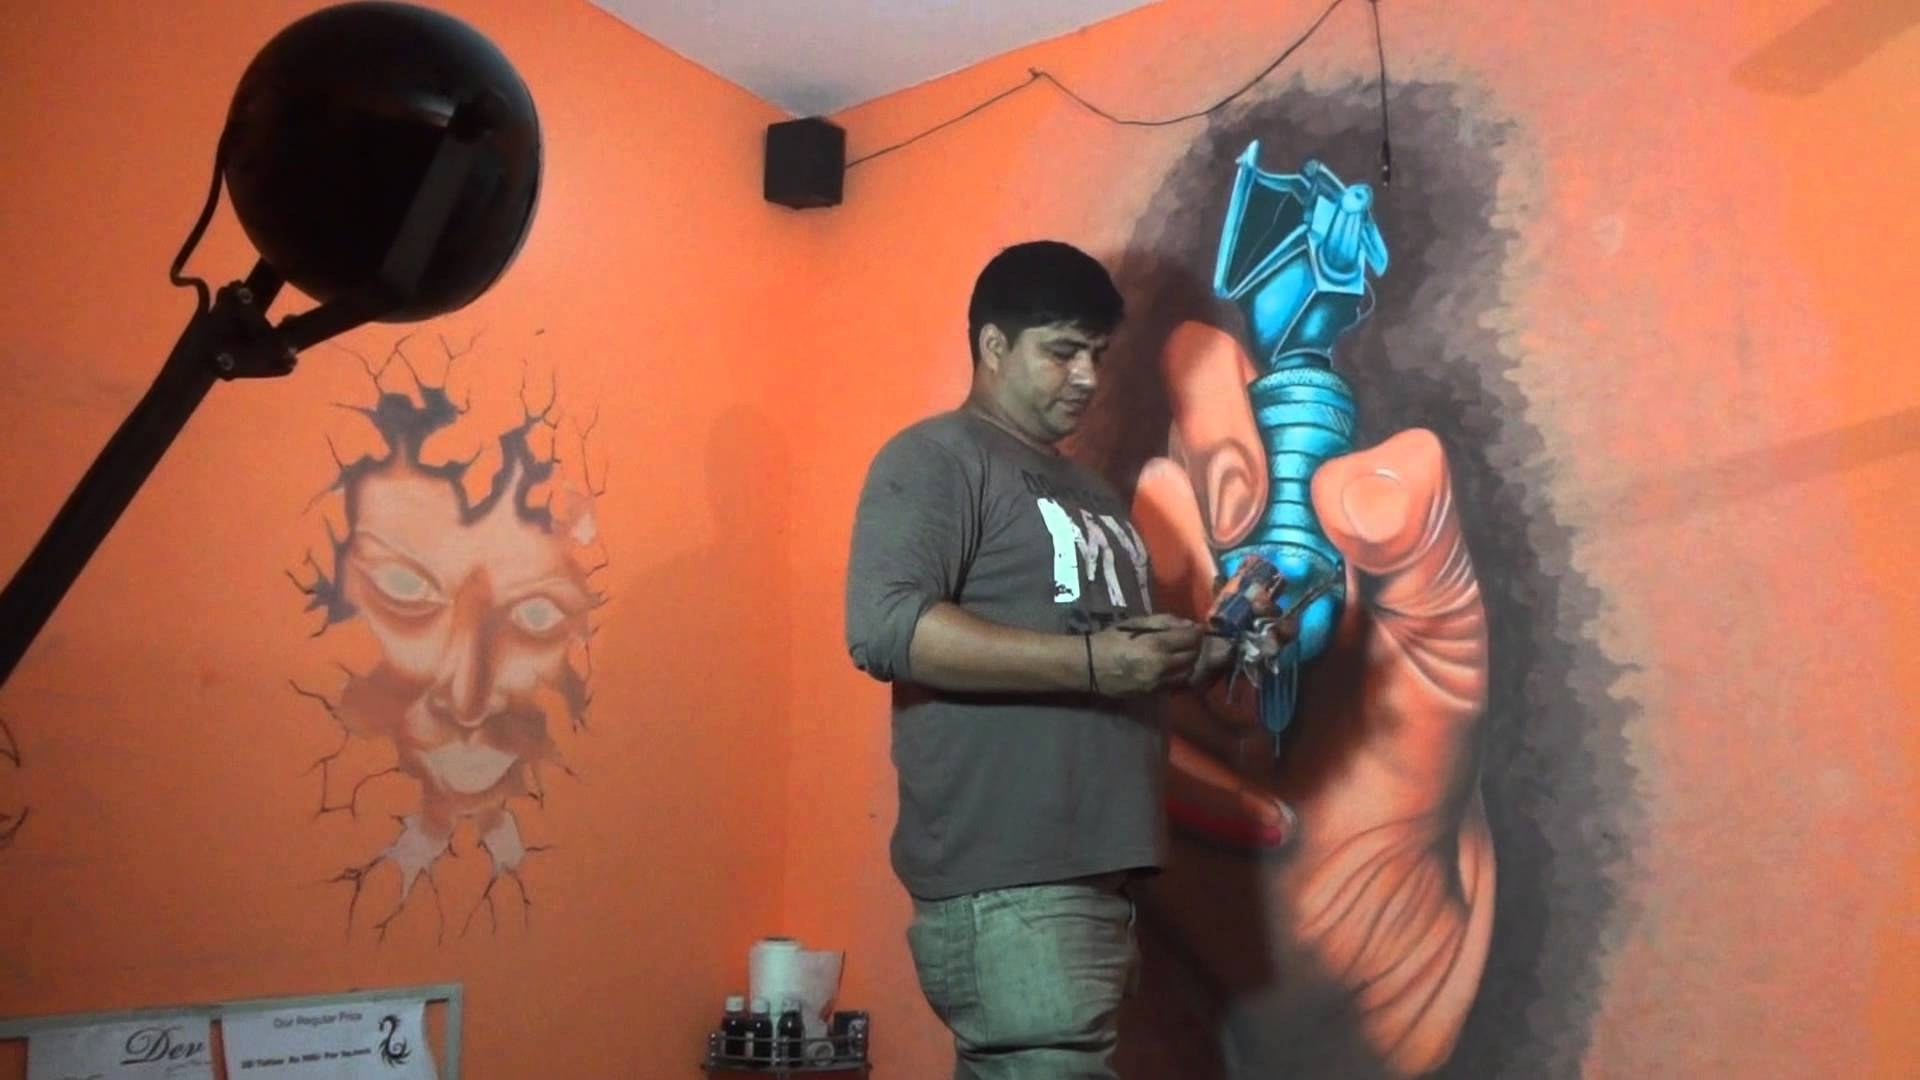 Tattoo Shop Wall Artdev 9313666999 – Youtube Pertaining To Most Up To Date Tattoos Wall Art (View 12 of 20)